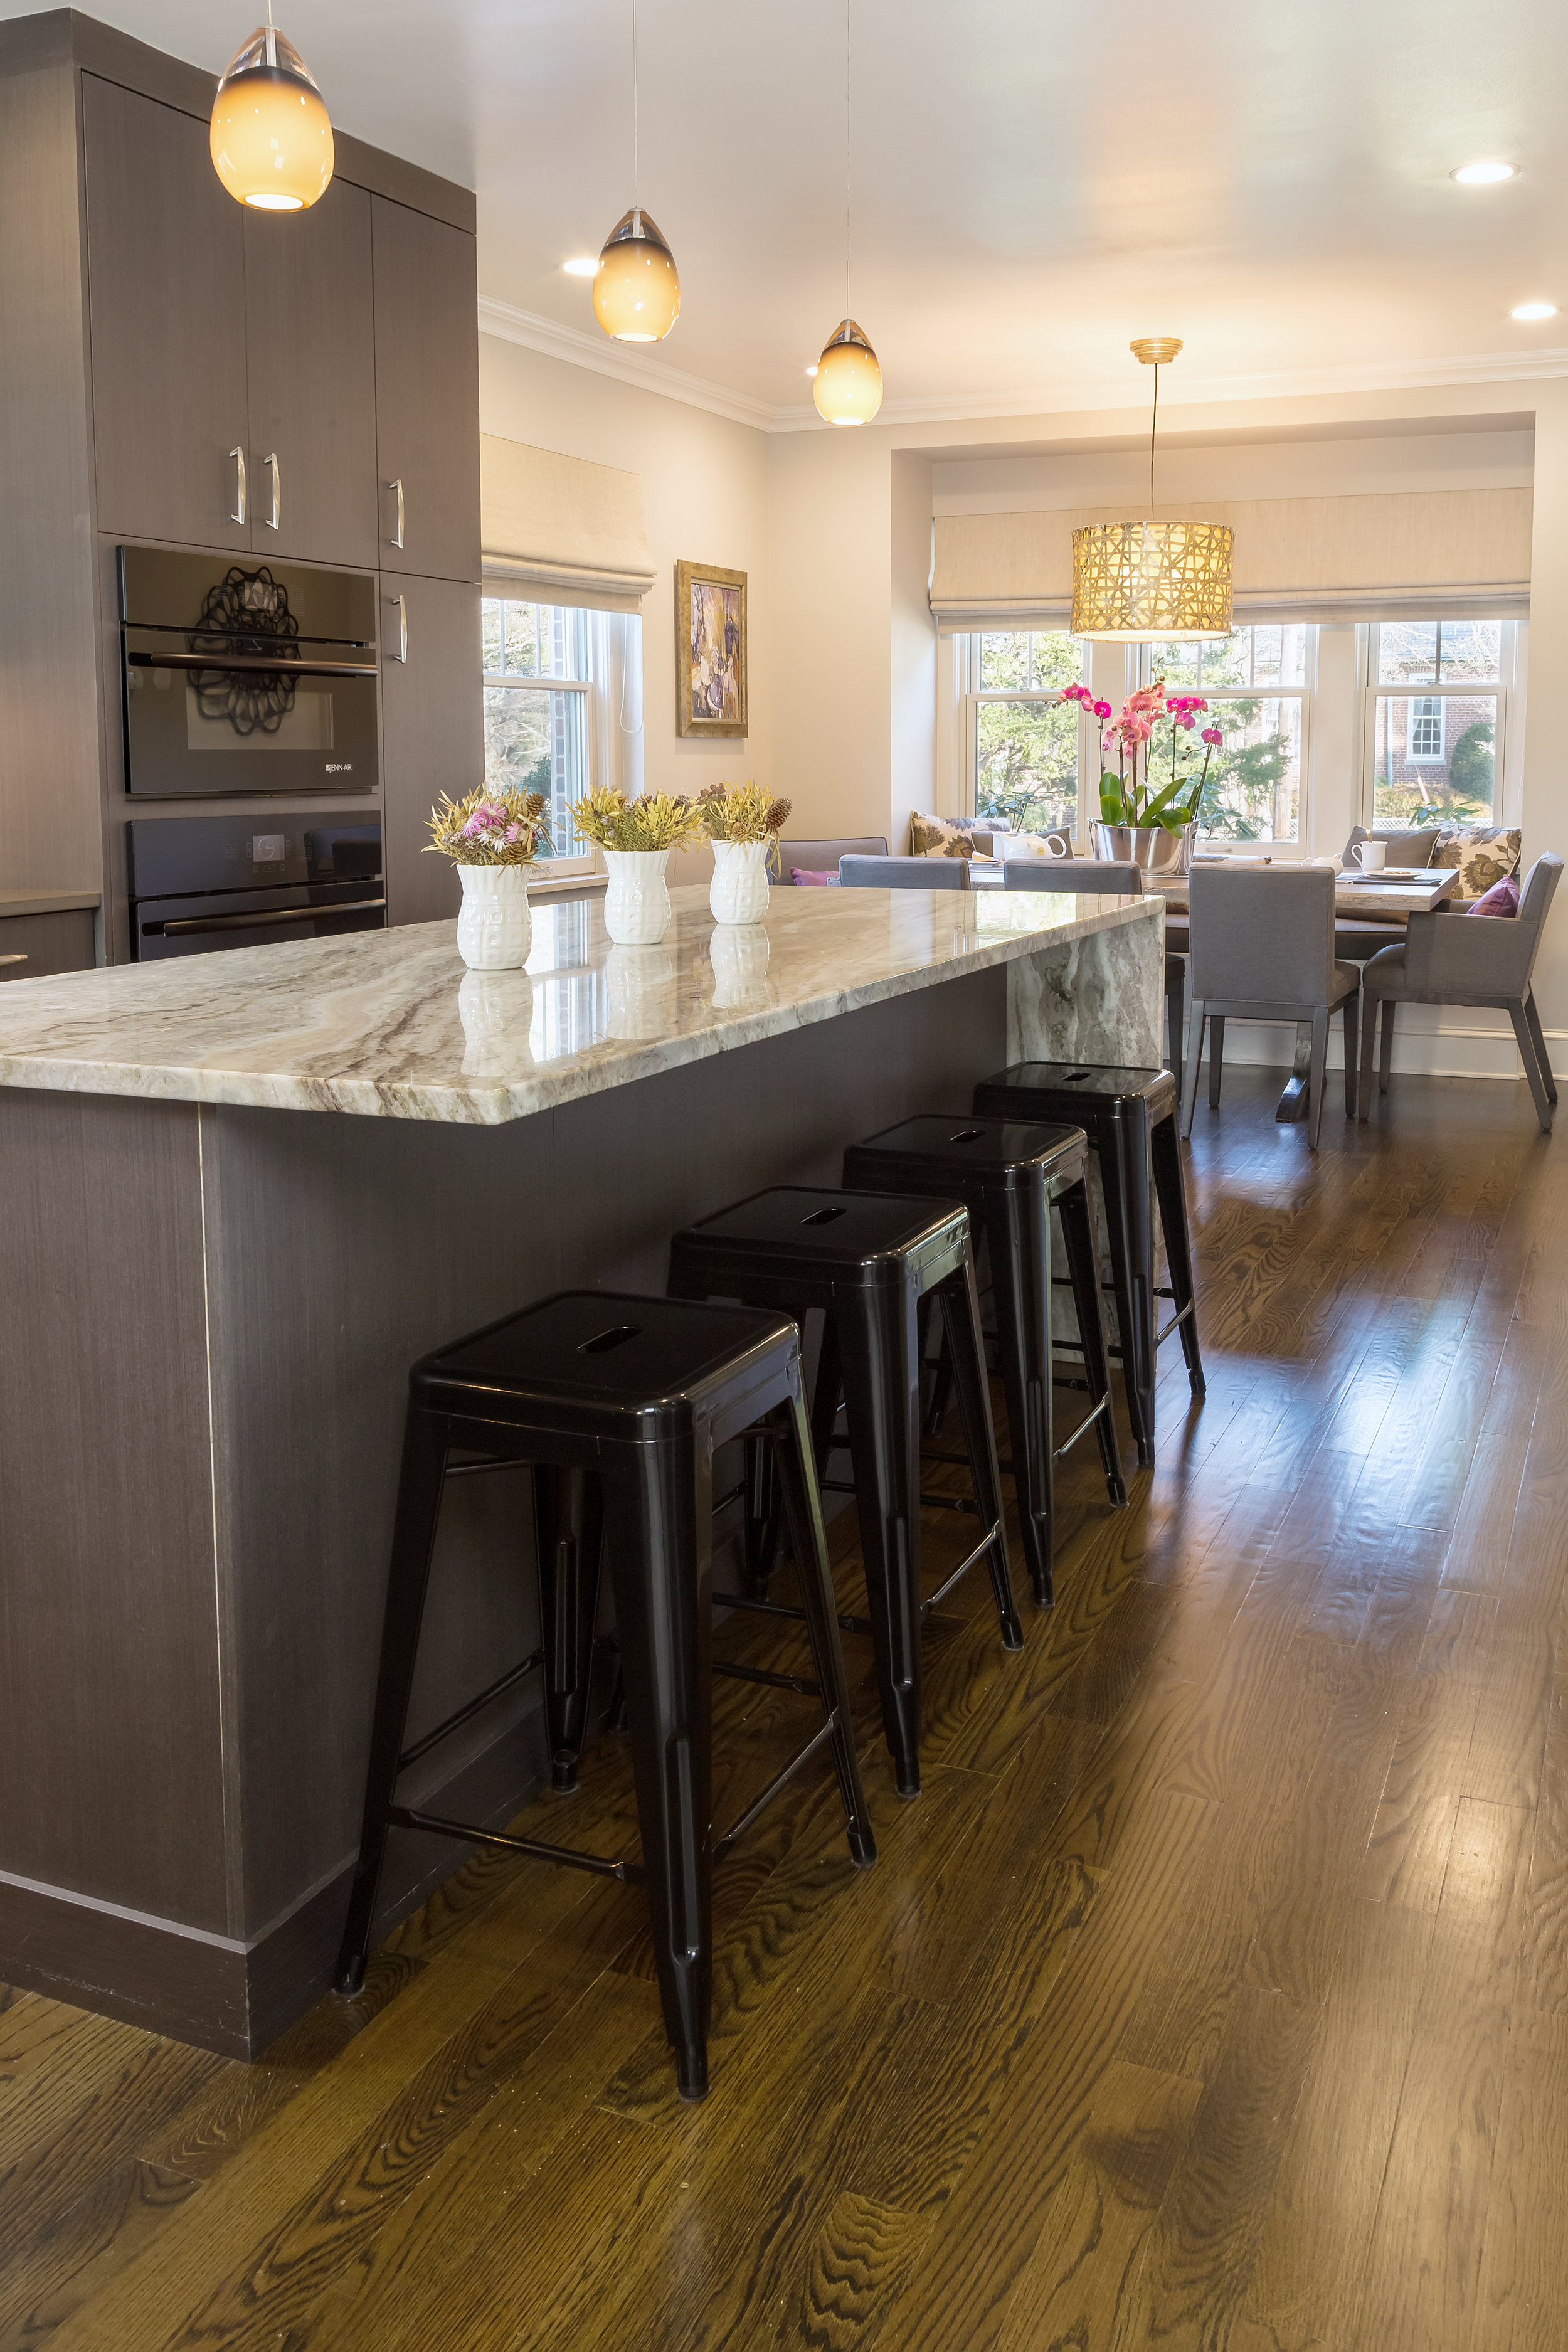 Contemporary style kitchen with center island and counter stools